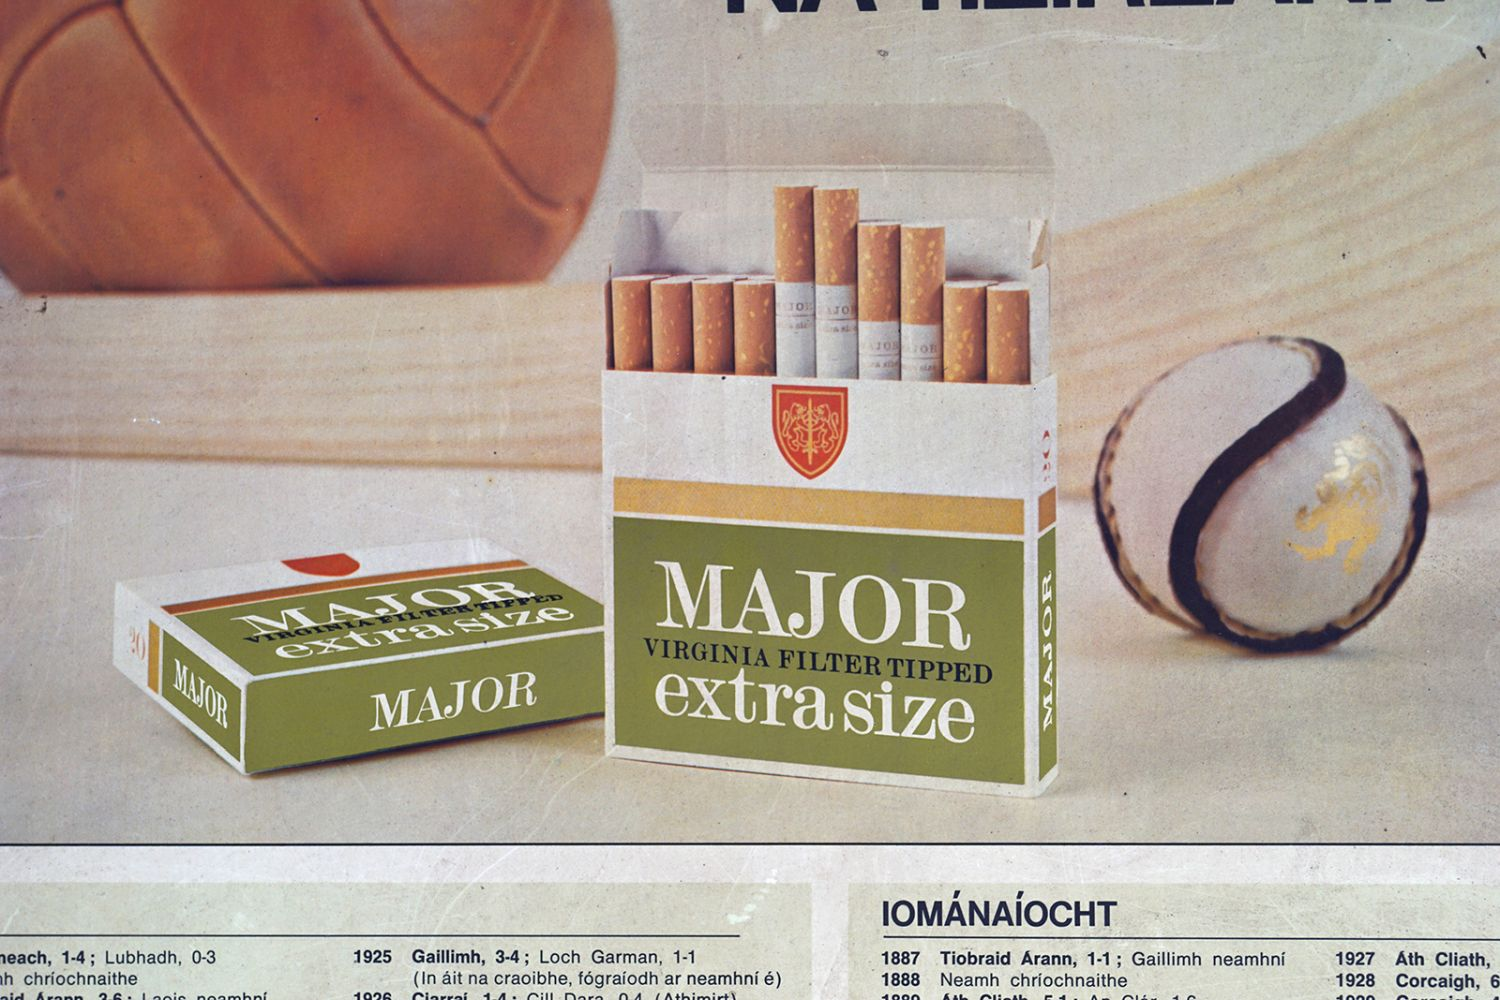 MAJOR VIRGINIA FILTER TIPPED CIGARETTES POSTER - Image 2 of 5